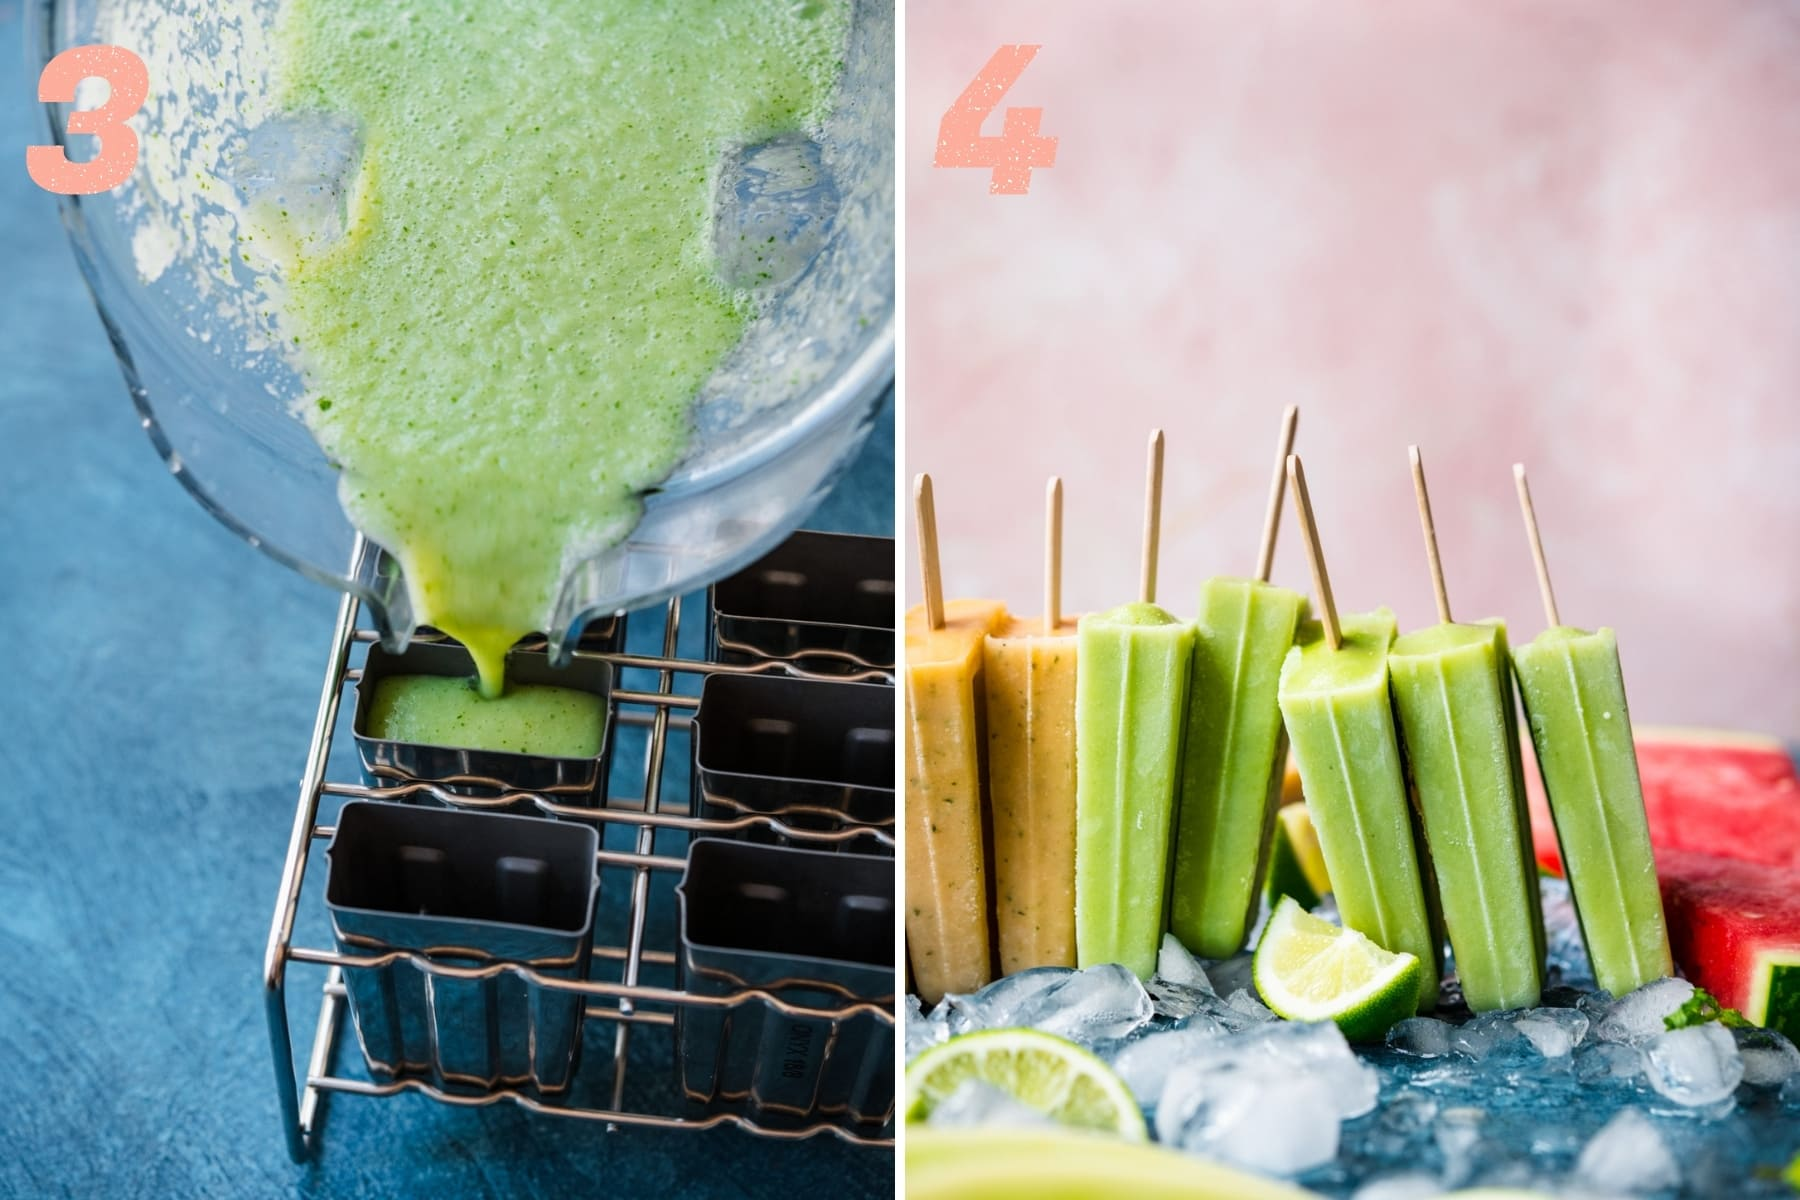 on the left: pouring melon yogurt popsicle mixture into popsicle molds. on the right: close up of honeydew yogurt popsicles.